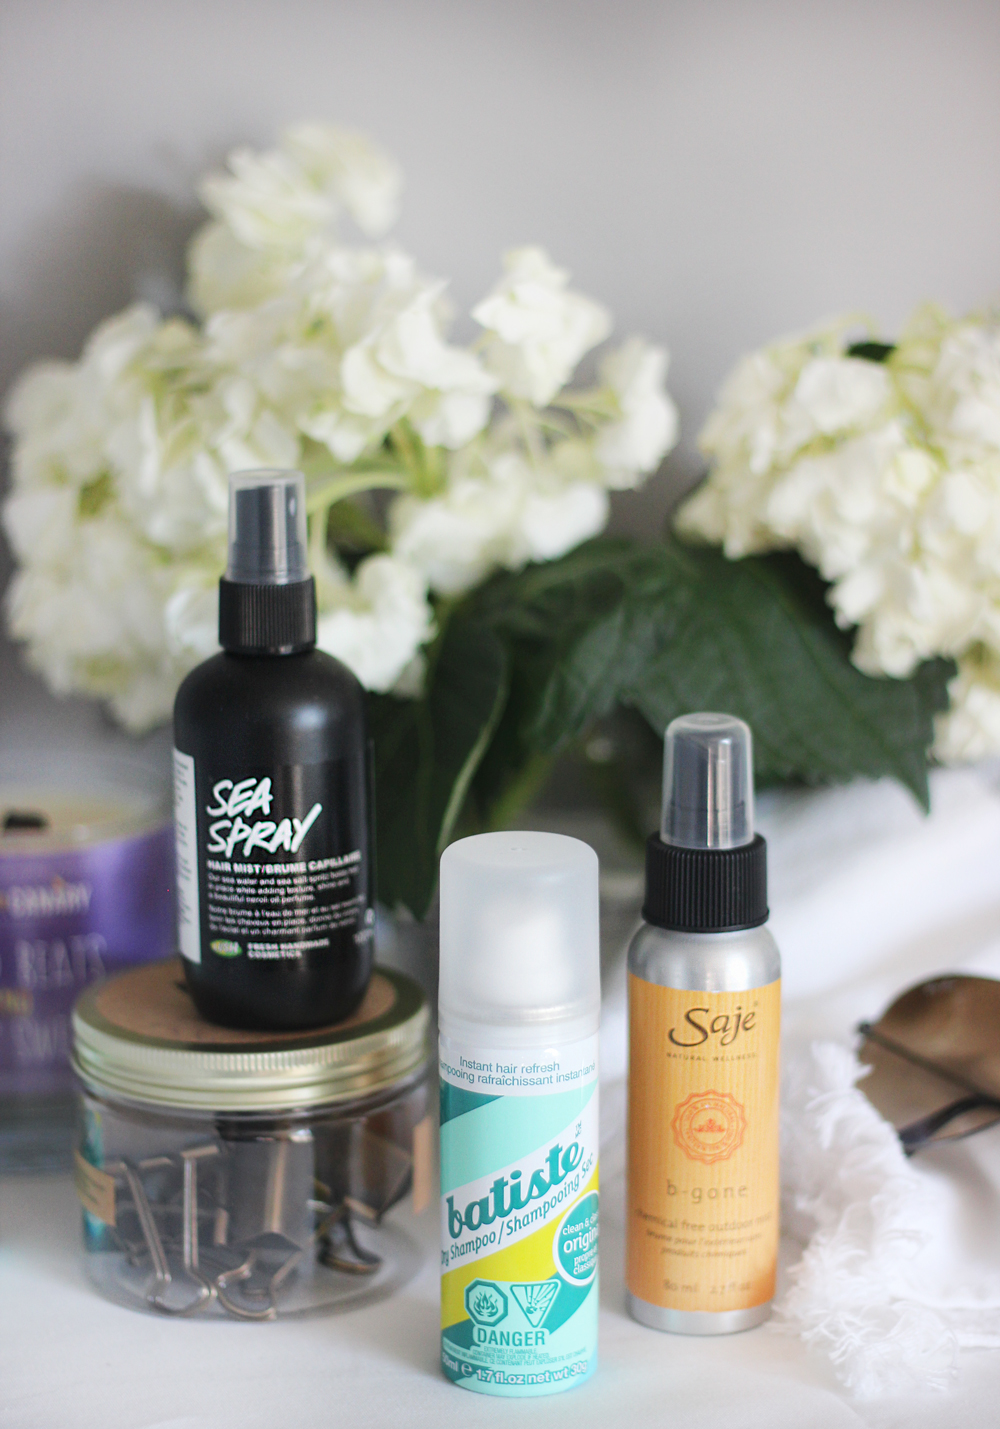 Lush Sea Spray | Batiste Dry Shampoo Travel Size | Saje B-Gone Chemical-Free Mist